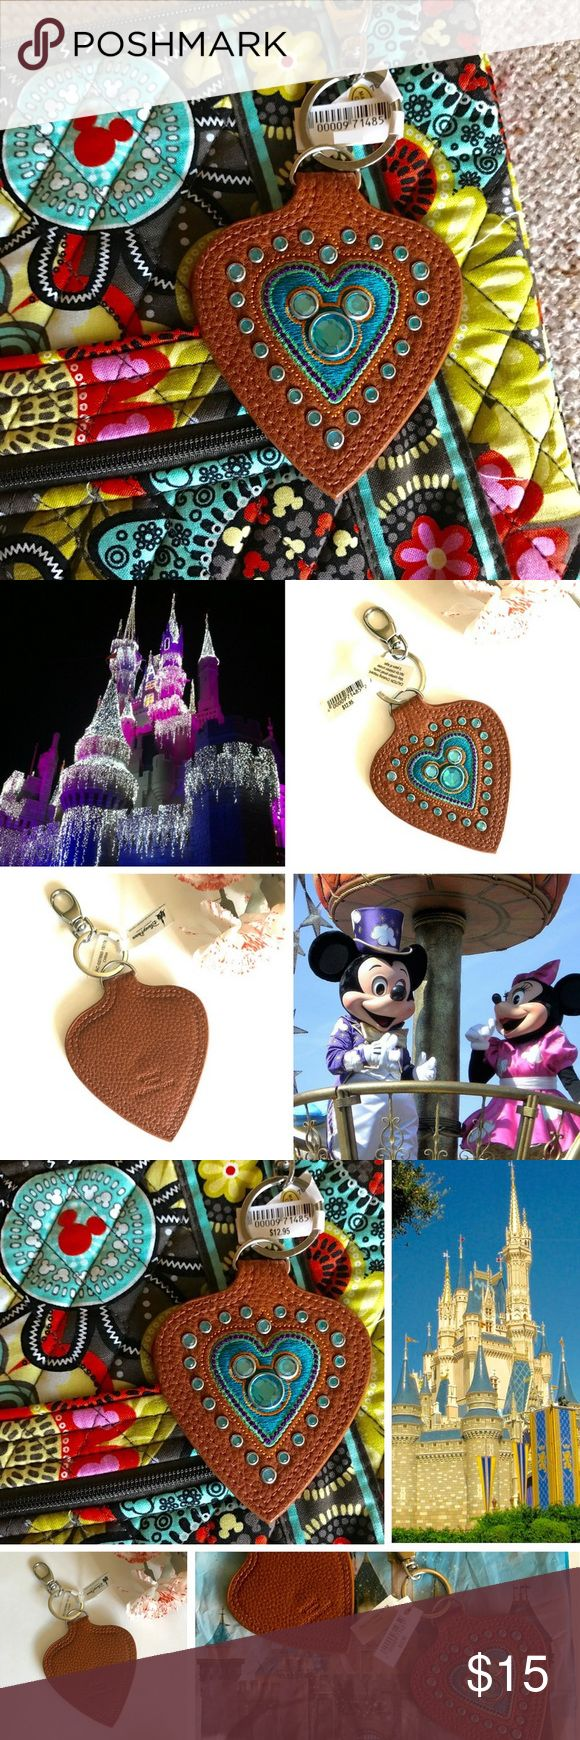 """🆕 Disney 💛 keychain - hard to find! Magically, adorably practical! This handy ❤️ keychain is so pretty with rhinestone detail, colored stitching and embroidery work – a heart frames Mickey ears on the front. Back: tan leather (?) grain with double stitching. Sturdy key ring with handy clip to adorn your bag. Rare – hard to find! NWT, never used. 2 available, price per keychain - bundle to save!  ❤️Size: approx 3"""" wide heart, total dangles 6"""" long 💚Imported 💛Authentic Disney Parks…"""